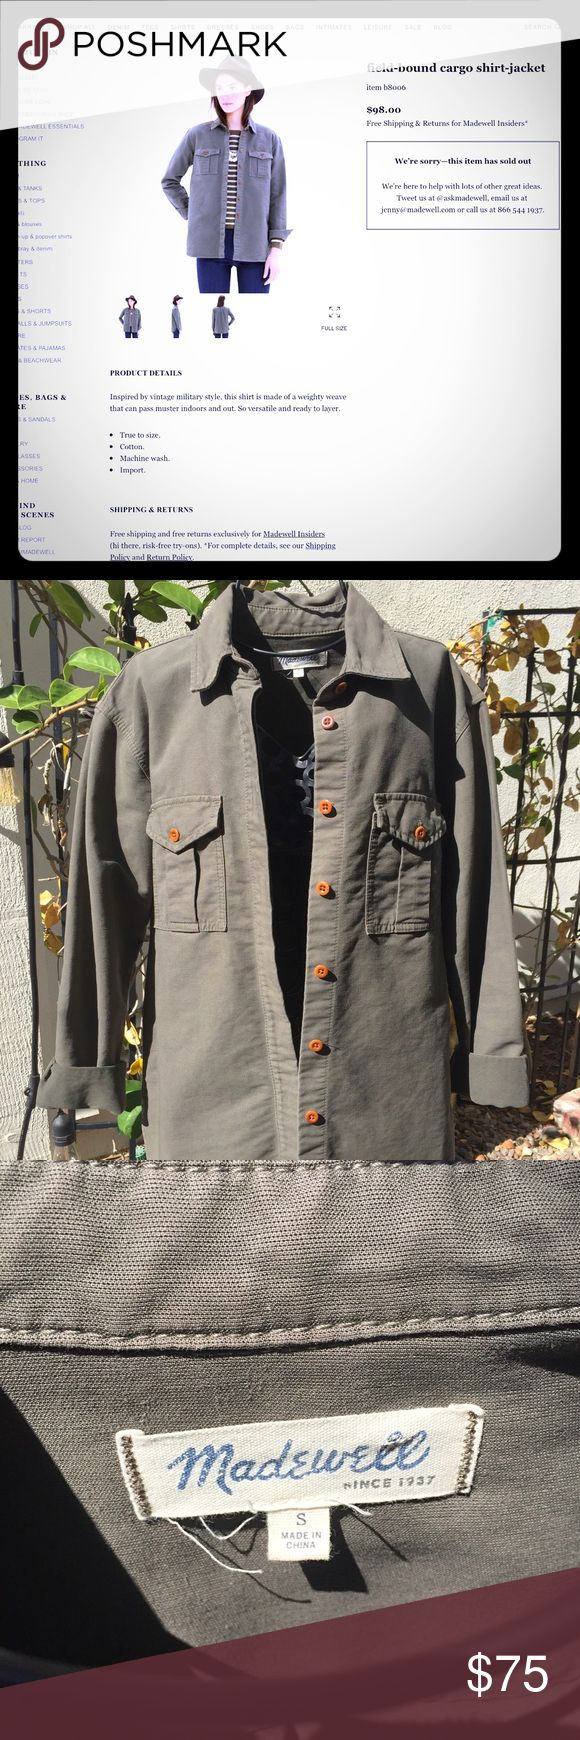 Madewell Green Field bound Cargo Shirt Jacket Inspired by vintage military style, this shirt is made of a weighty weave that can pass muster indoors and out. So versatile and ready to layer.   True to size. Cotton. Machine wash. Import. Madewell Tops Button Down Shirts